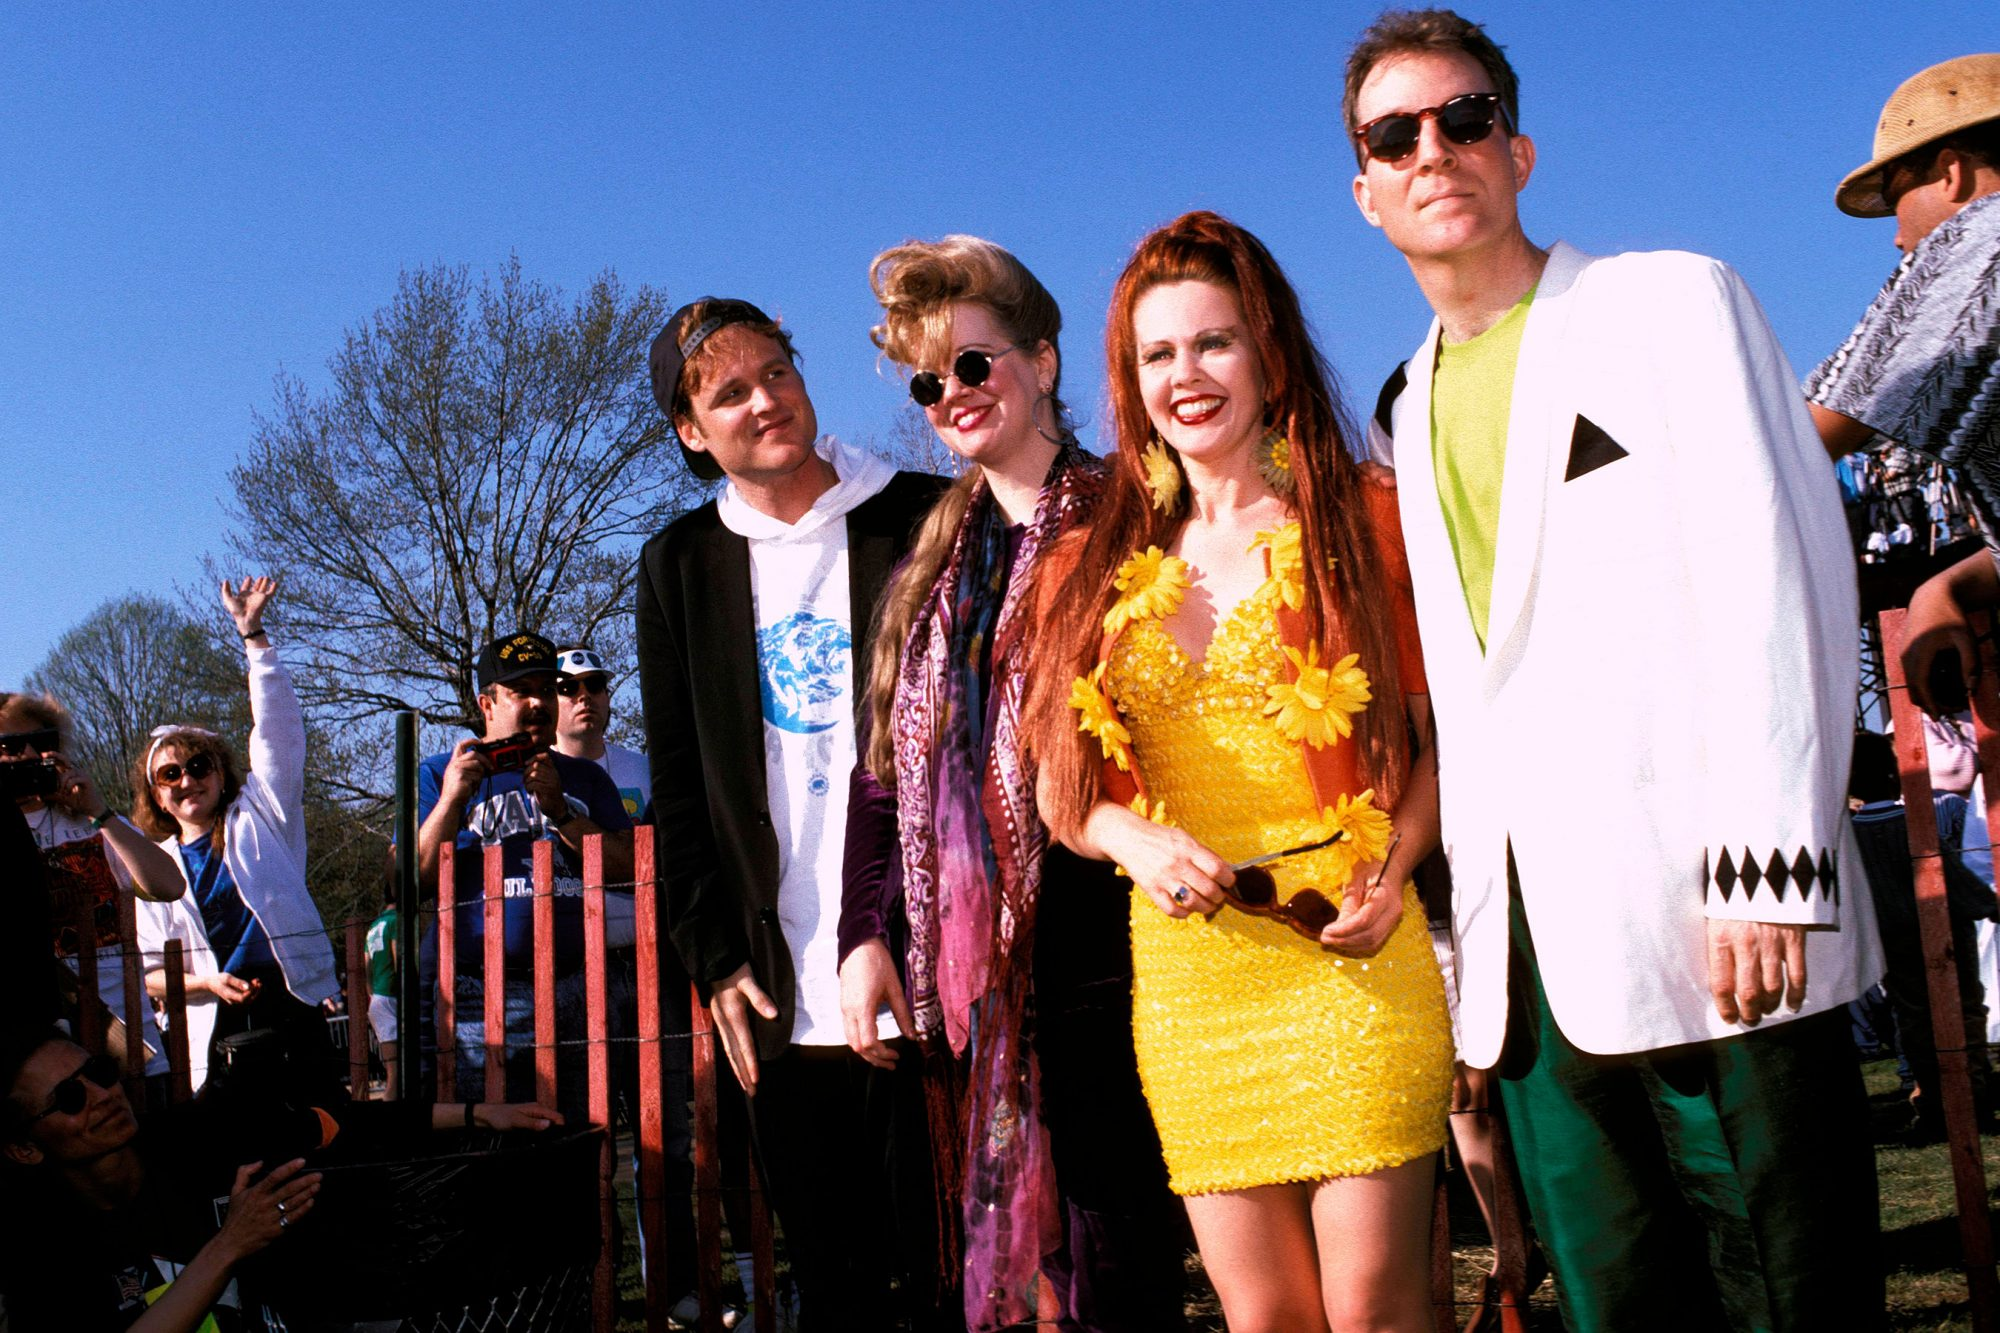 Photo of B-52's and B52'S